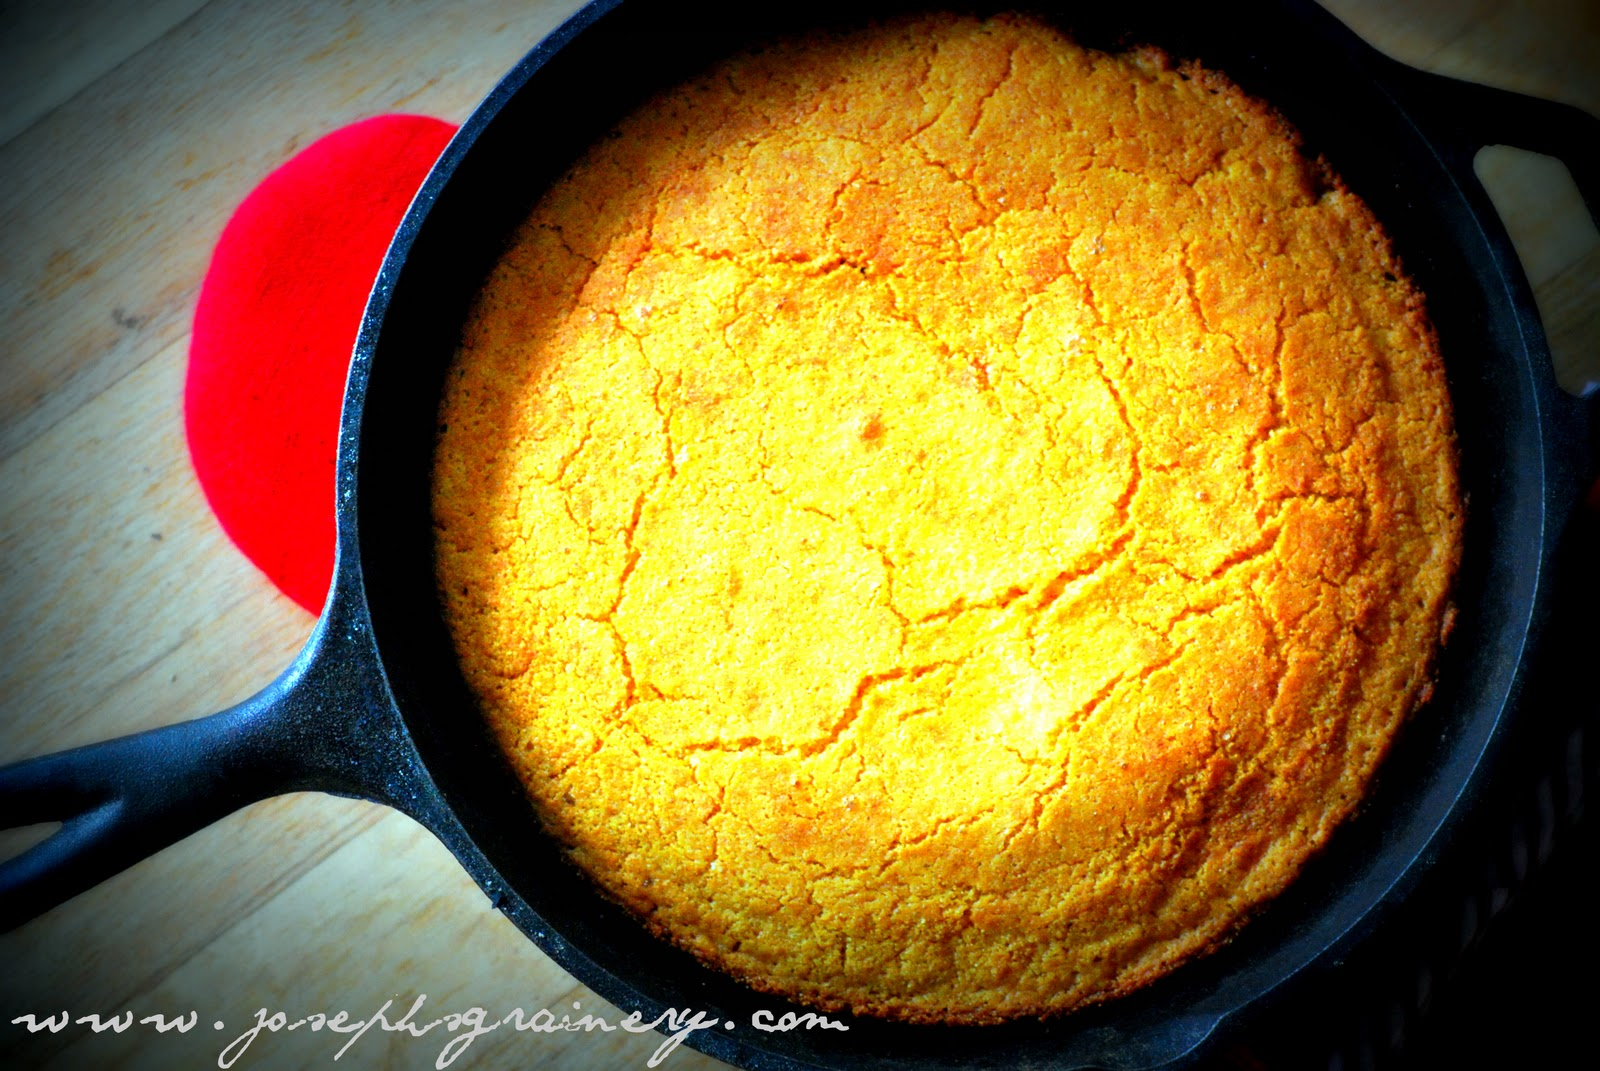 Skillet Cornbread made with Joseph's Grainery Whole Wheat Flour